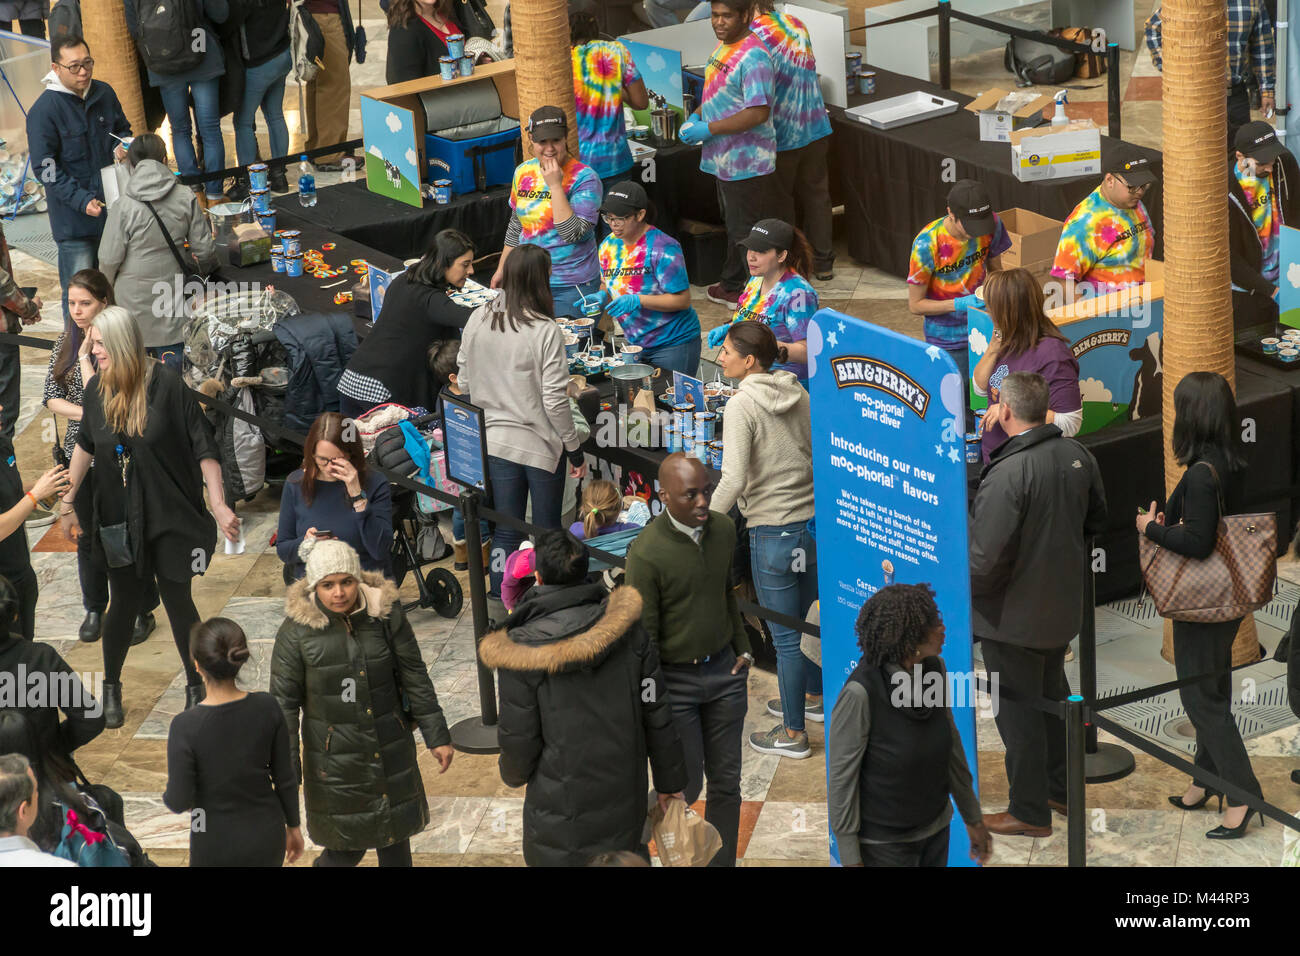 Thousands of ice cream lovers invade the Brookfield Place Winter Garden for Ben & Jerry's New Creations - Stock Image